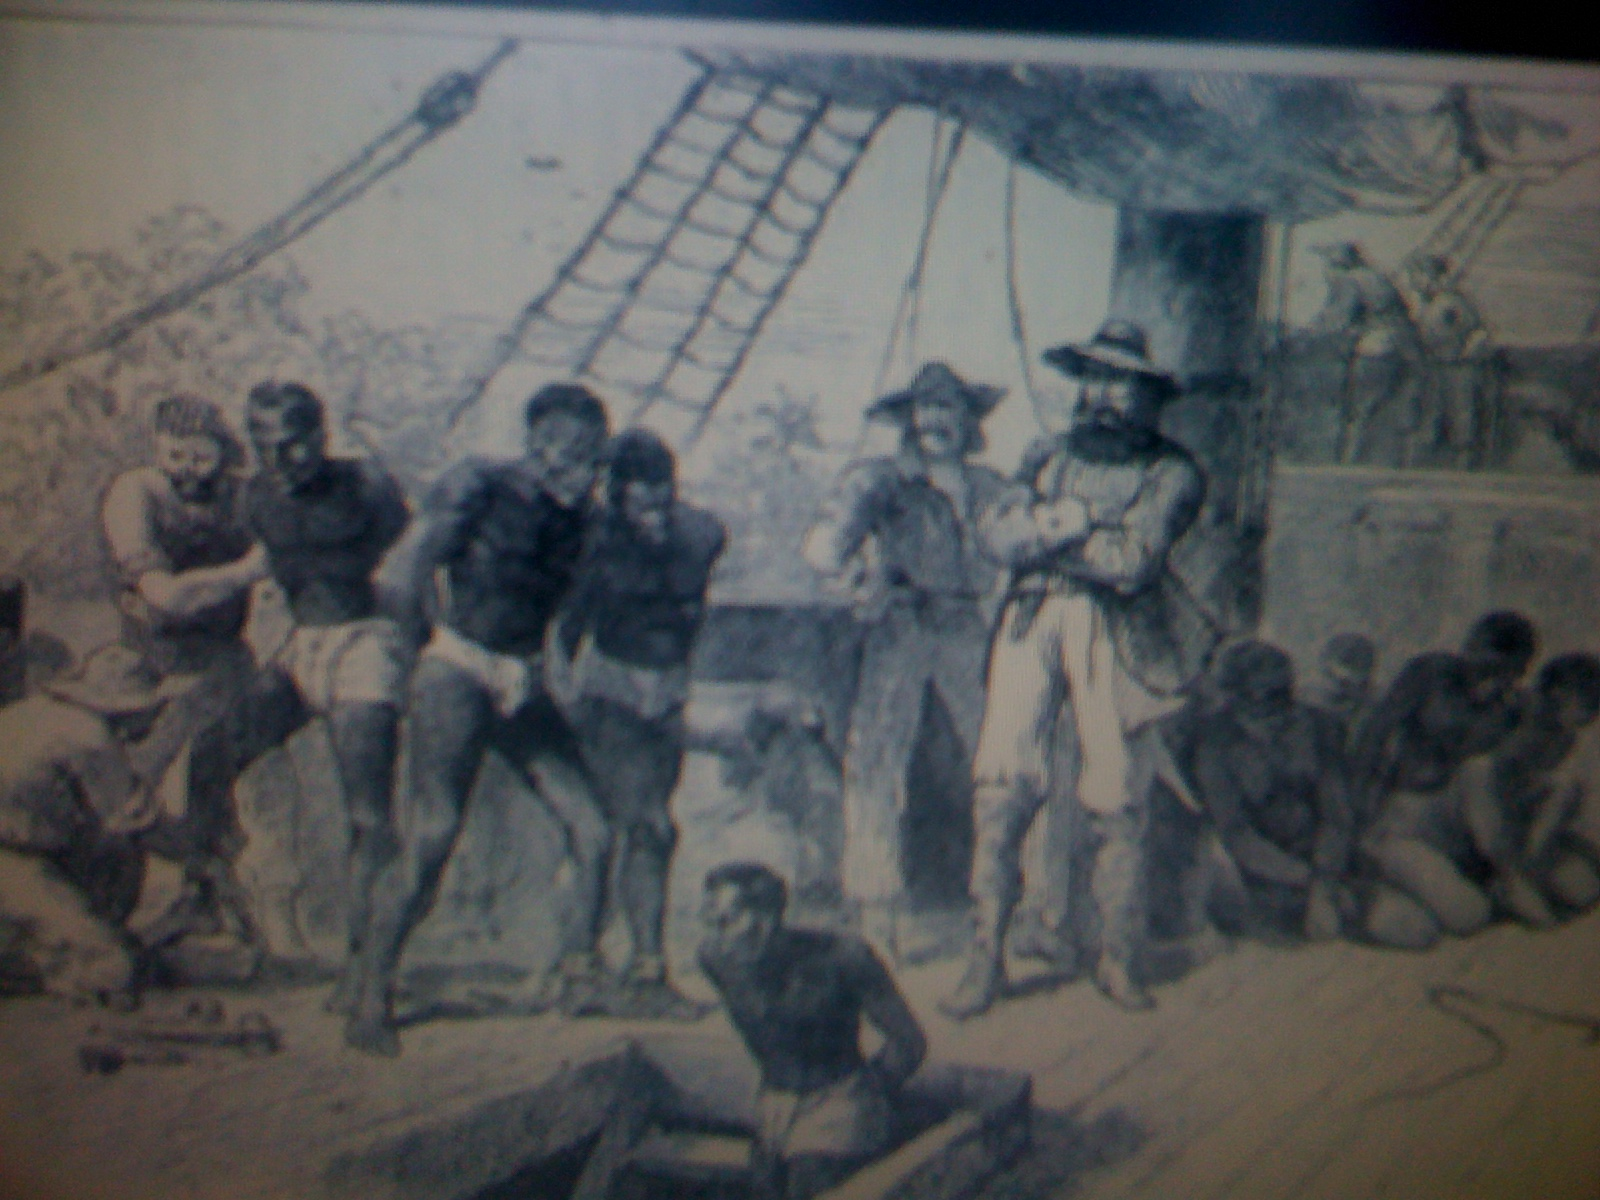 the slave trade in portugal history essay The disgrace of slavery all fell in the history of the trans-atlantic slave trade during third period is where the inhumanity of the treatment of slaves occurred the european role in the trans-atlantic slave trade in the late 15th century, became an important factor the portuguese were the first.